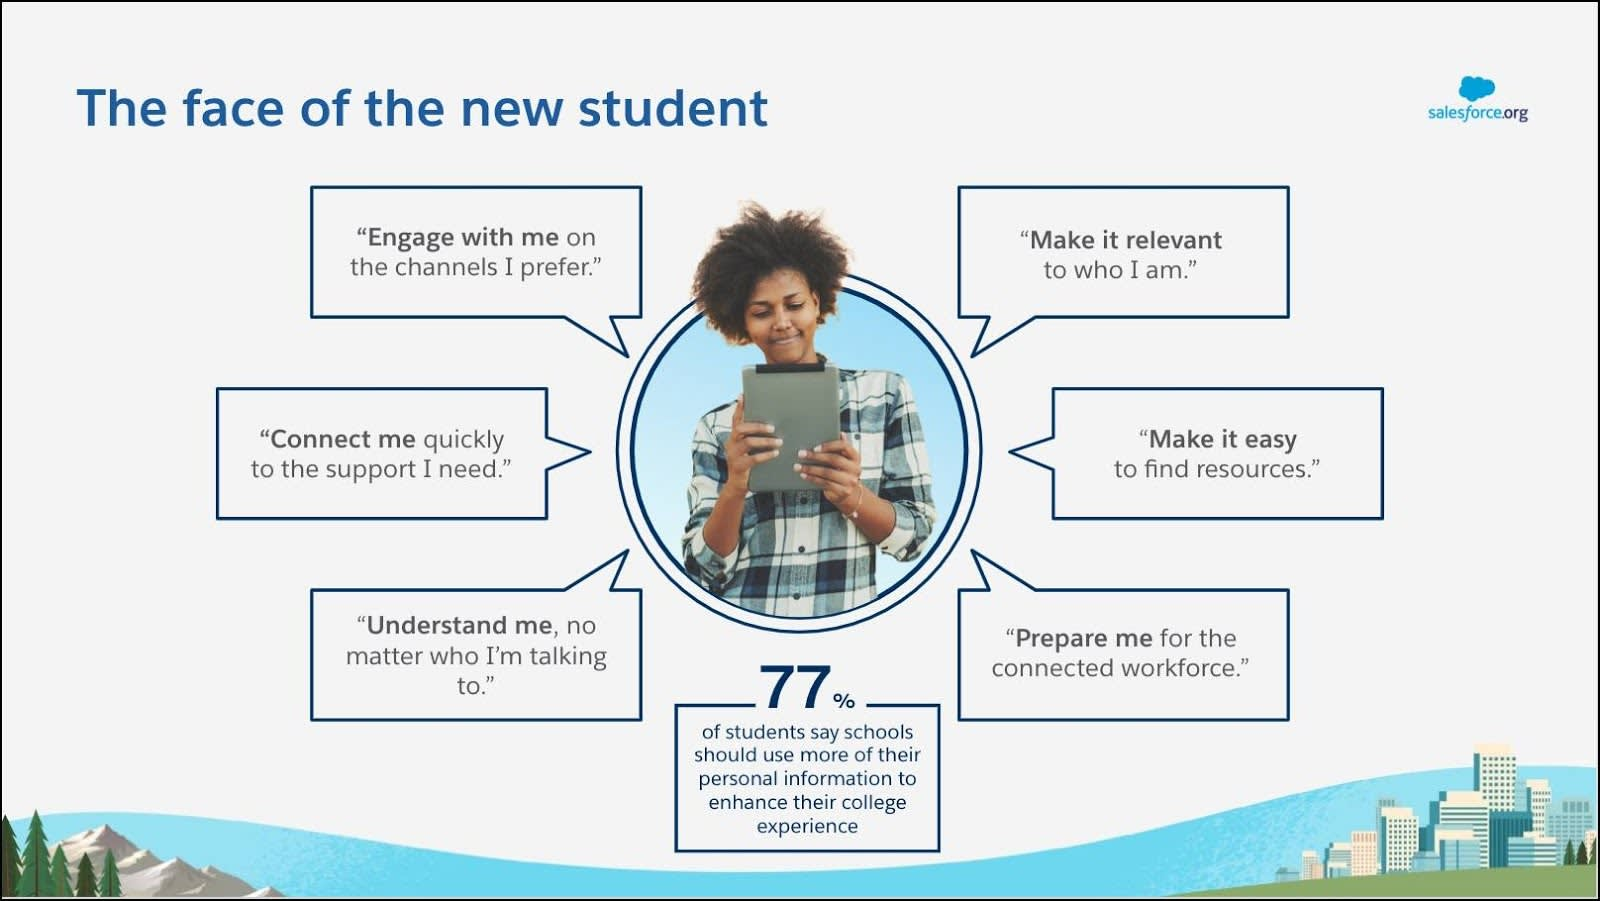 """The face of the new student features a student that voices the following needs: """"Engage with me on the channels I prefer"""", """"Make it relevant to who I am"""", """"Make it easy to find resources"""", """"Prepare me for the connected workforce"""", """"Understand me, no matter who I'm talking to"""", Connect me quickly to the support I need"""". 77% of students say schools should use more of their personal information to enhance their college experience."""